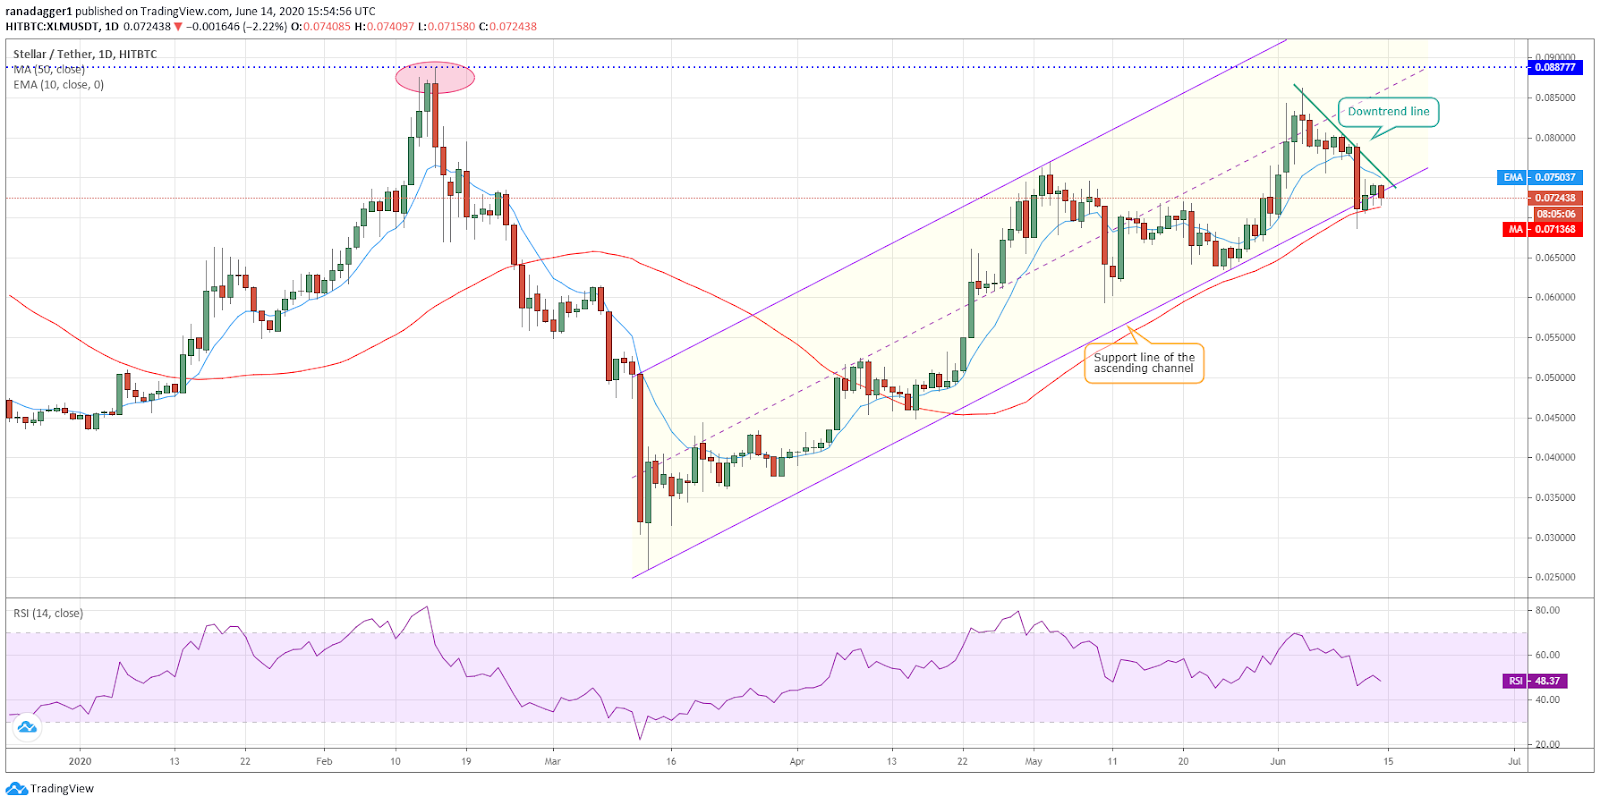 XLM/USD daily chart. Source: Tradingview